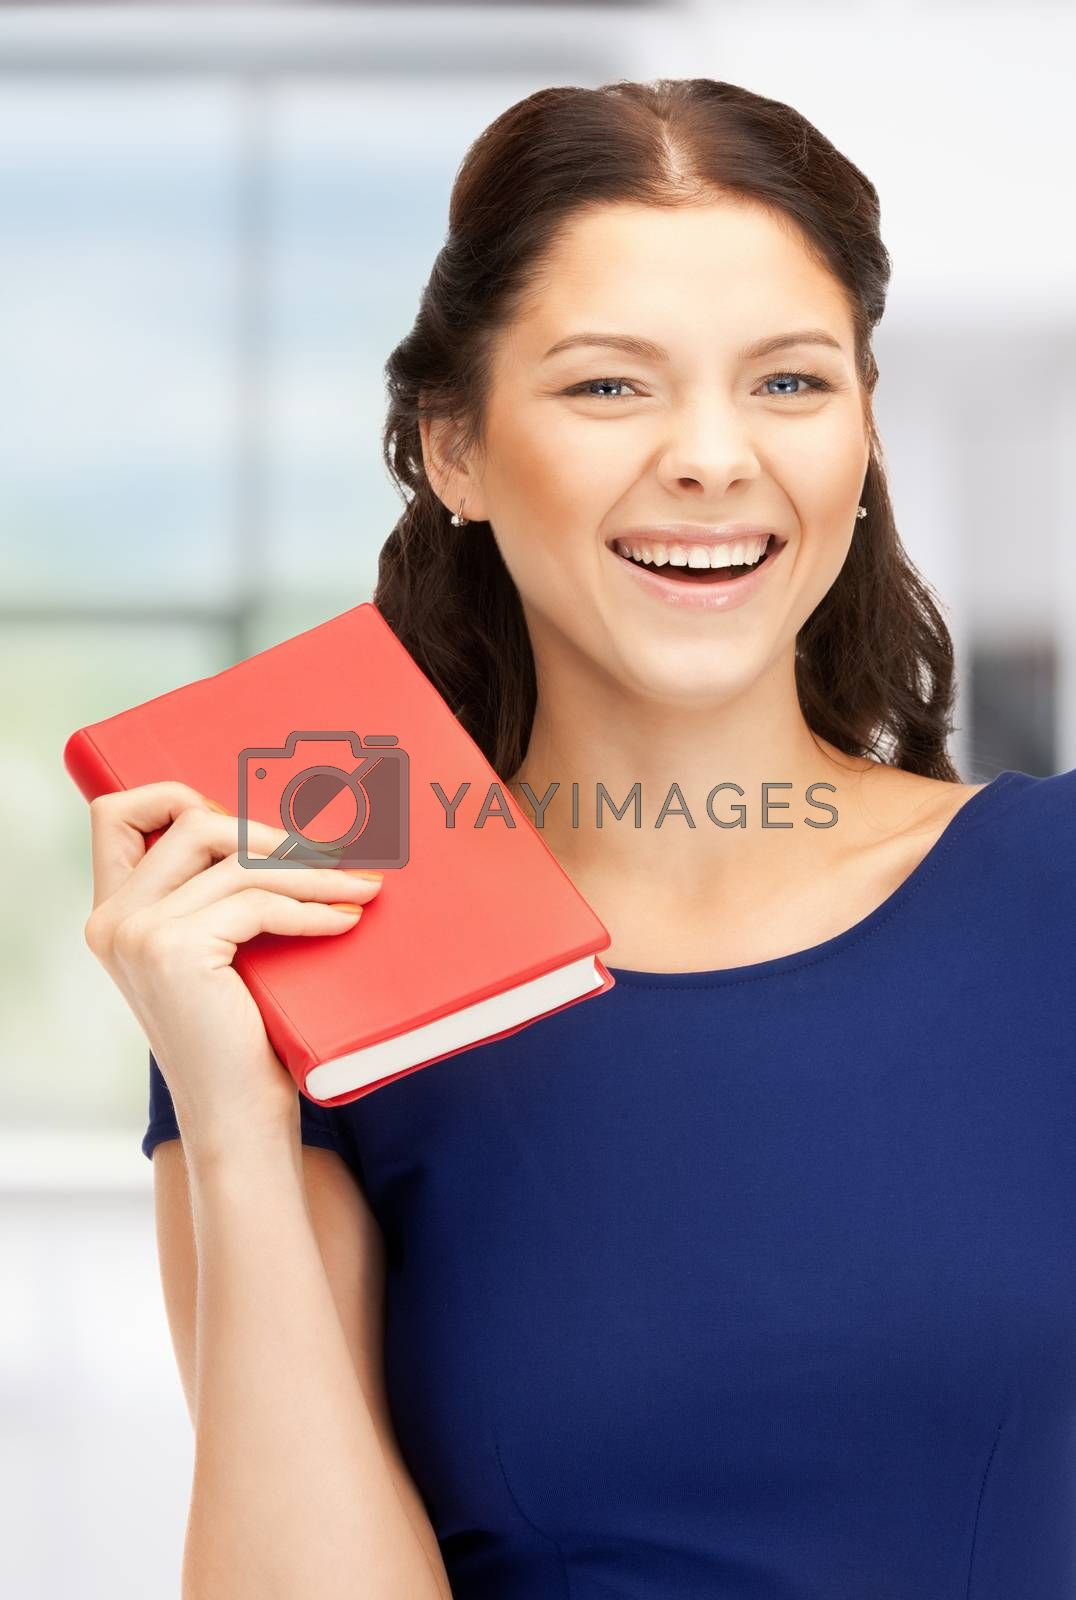 happy and smiling woman with book by dolgachov